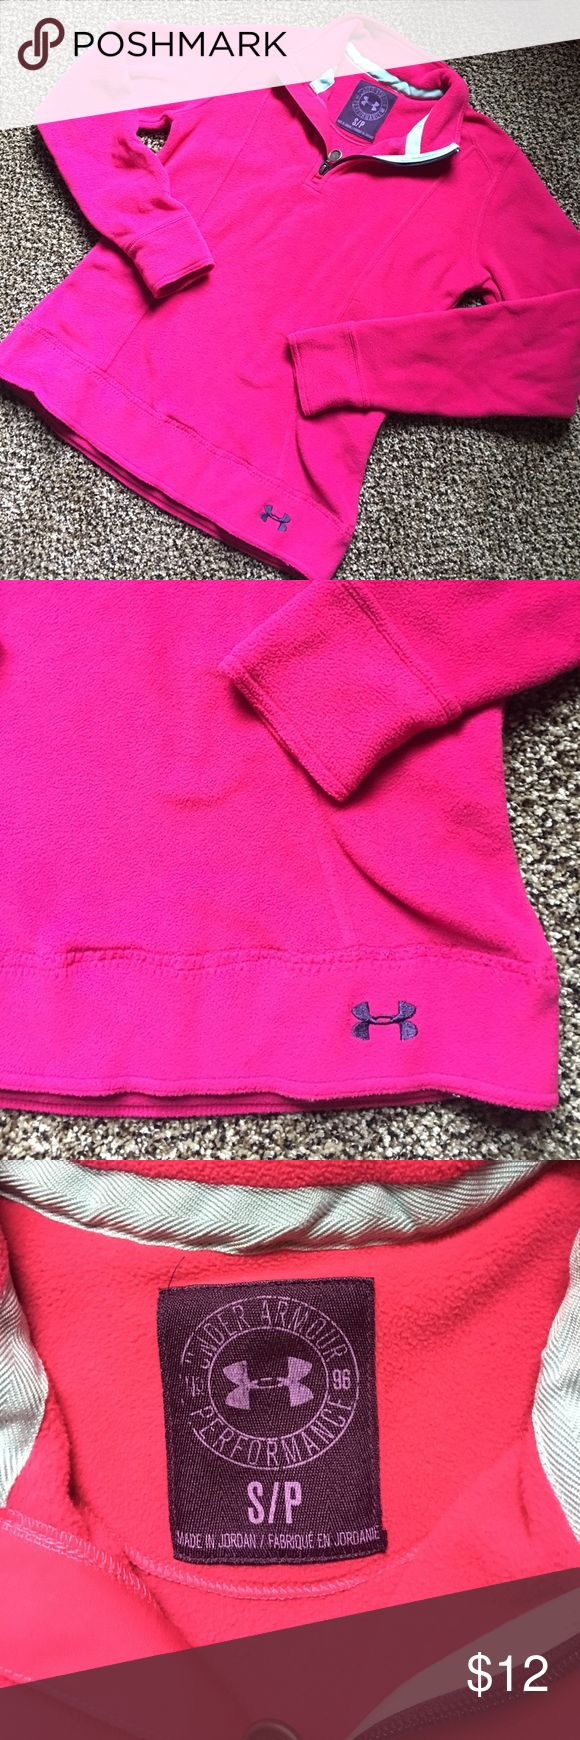 Pink under armour hoodie Pink under armour hoodie, half zip, fleece material, great condition!!! No stains, rips or tears. Pet free and smoke free home! Under Armour Tops Sweatshirts & Hoodies